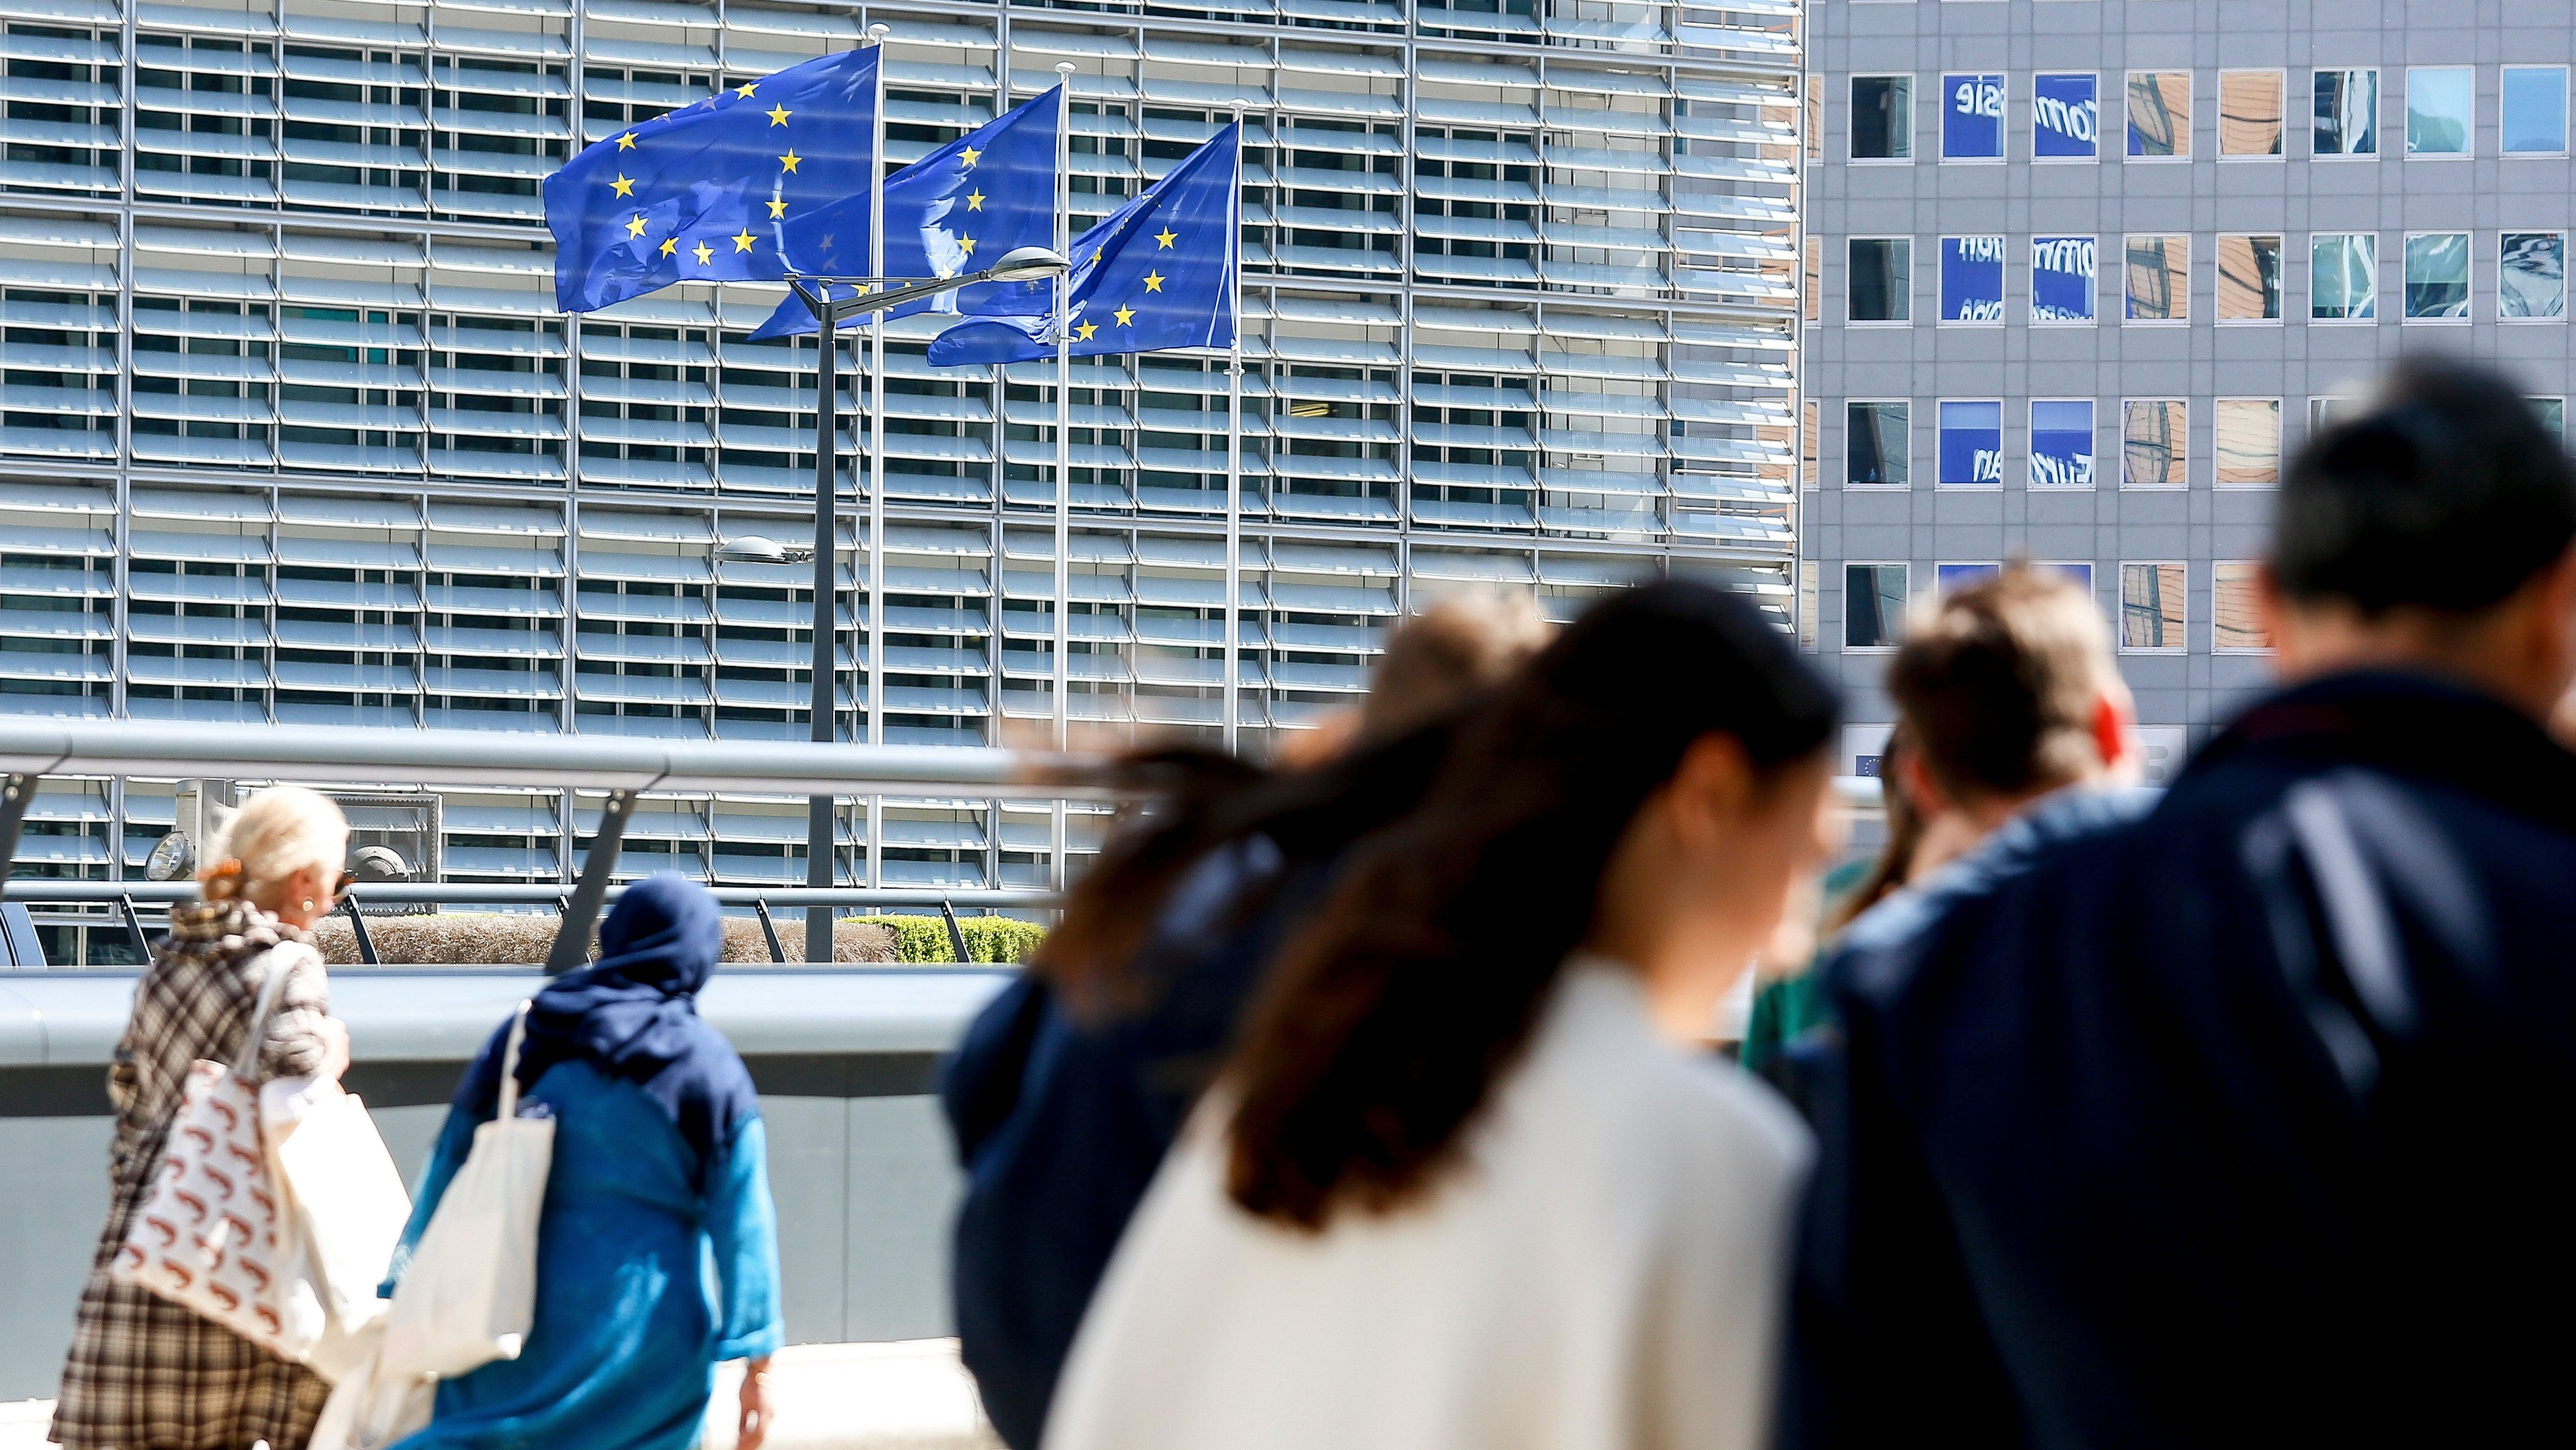 European Union flags fly near the seat of the European Commission at the Berlaymont building in Brussels, Belgium.